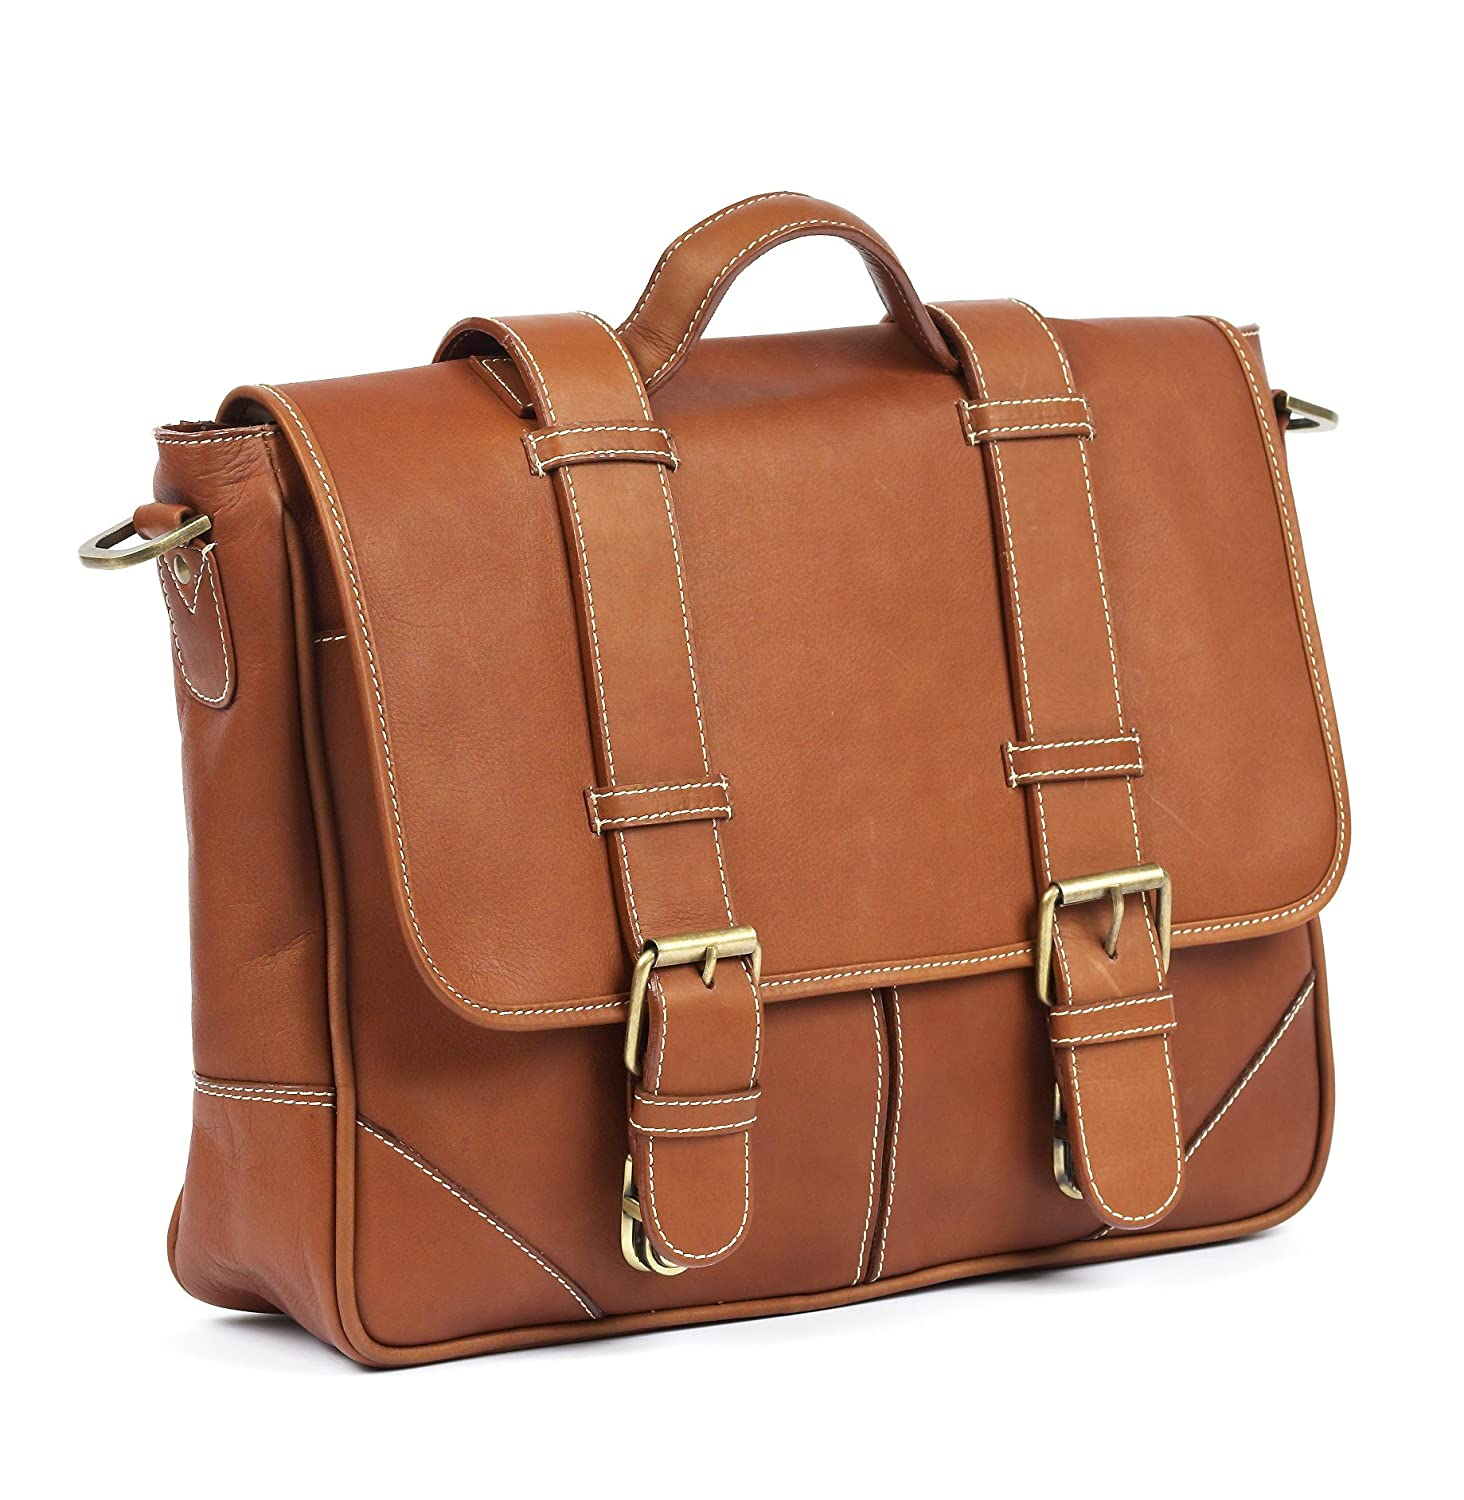 One Size Claire Chase Larado Messenger Distressed Brown